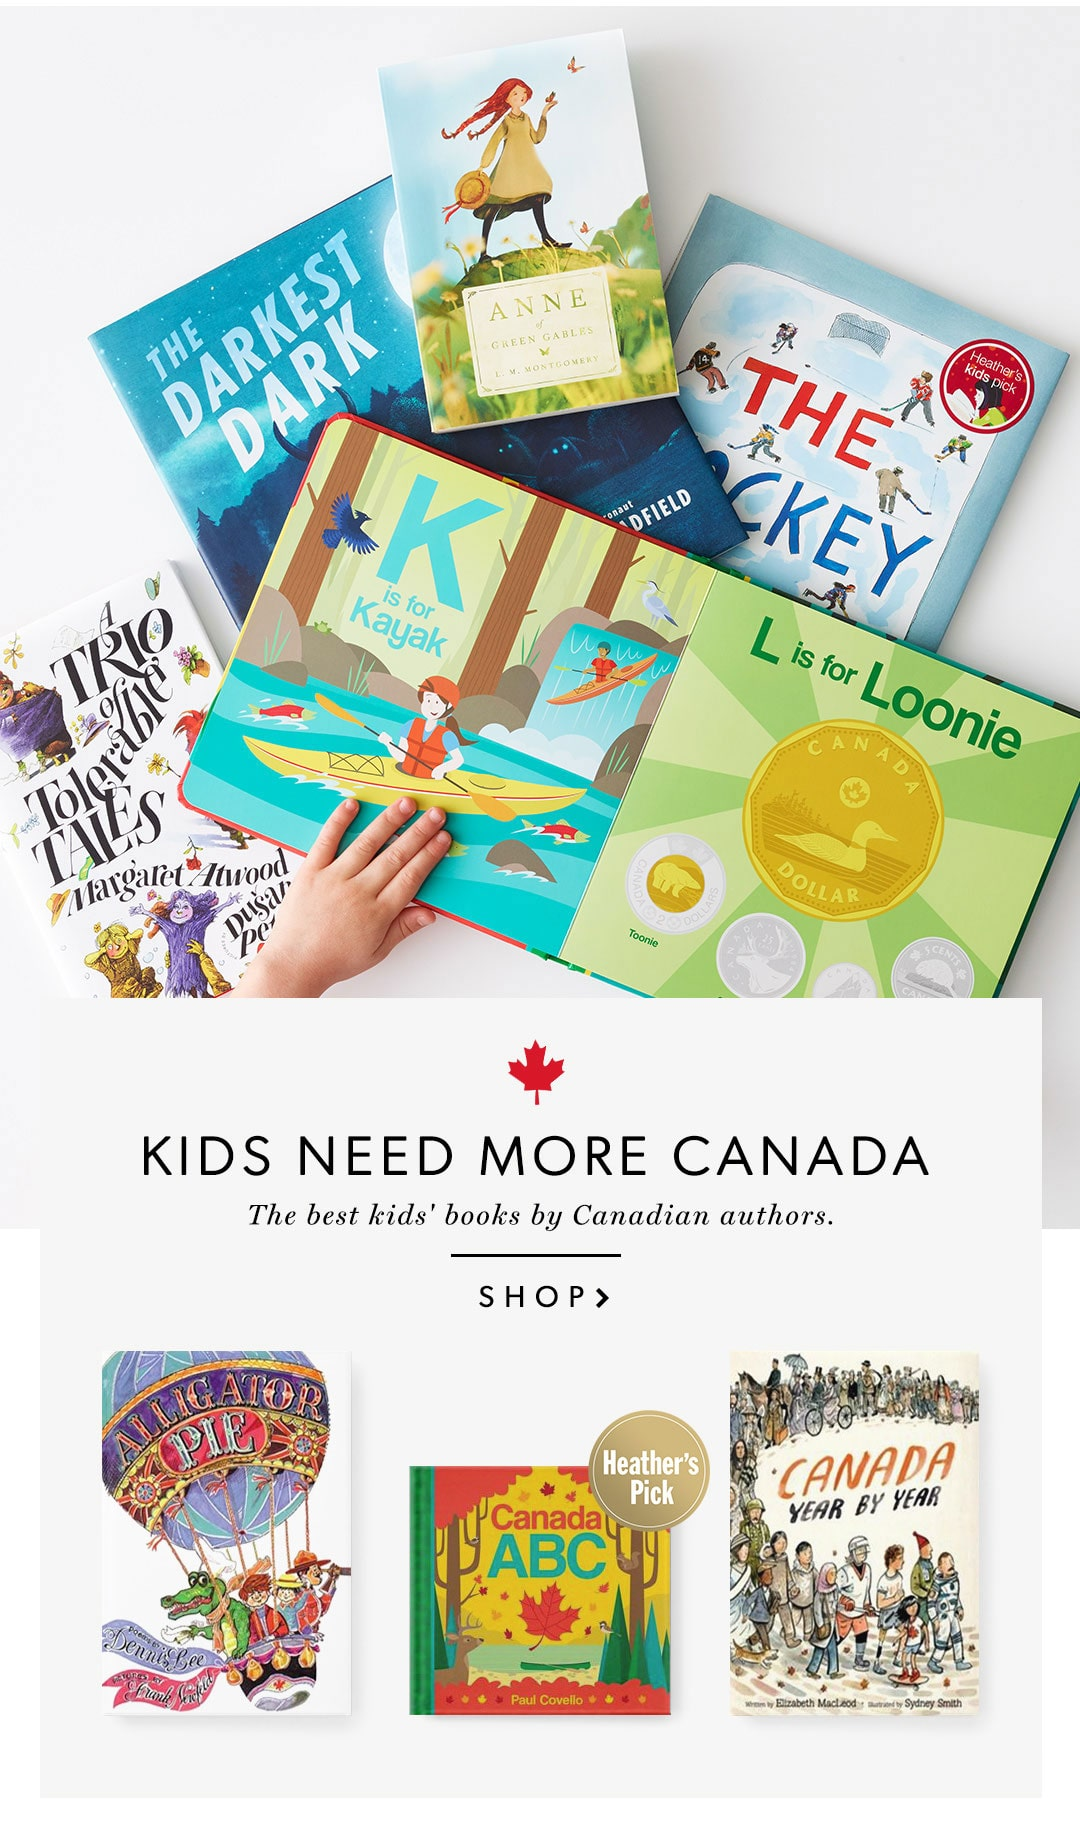 Kids need more Canada